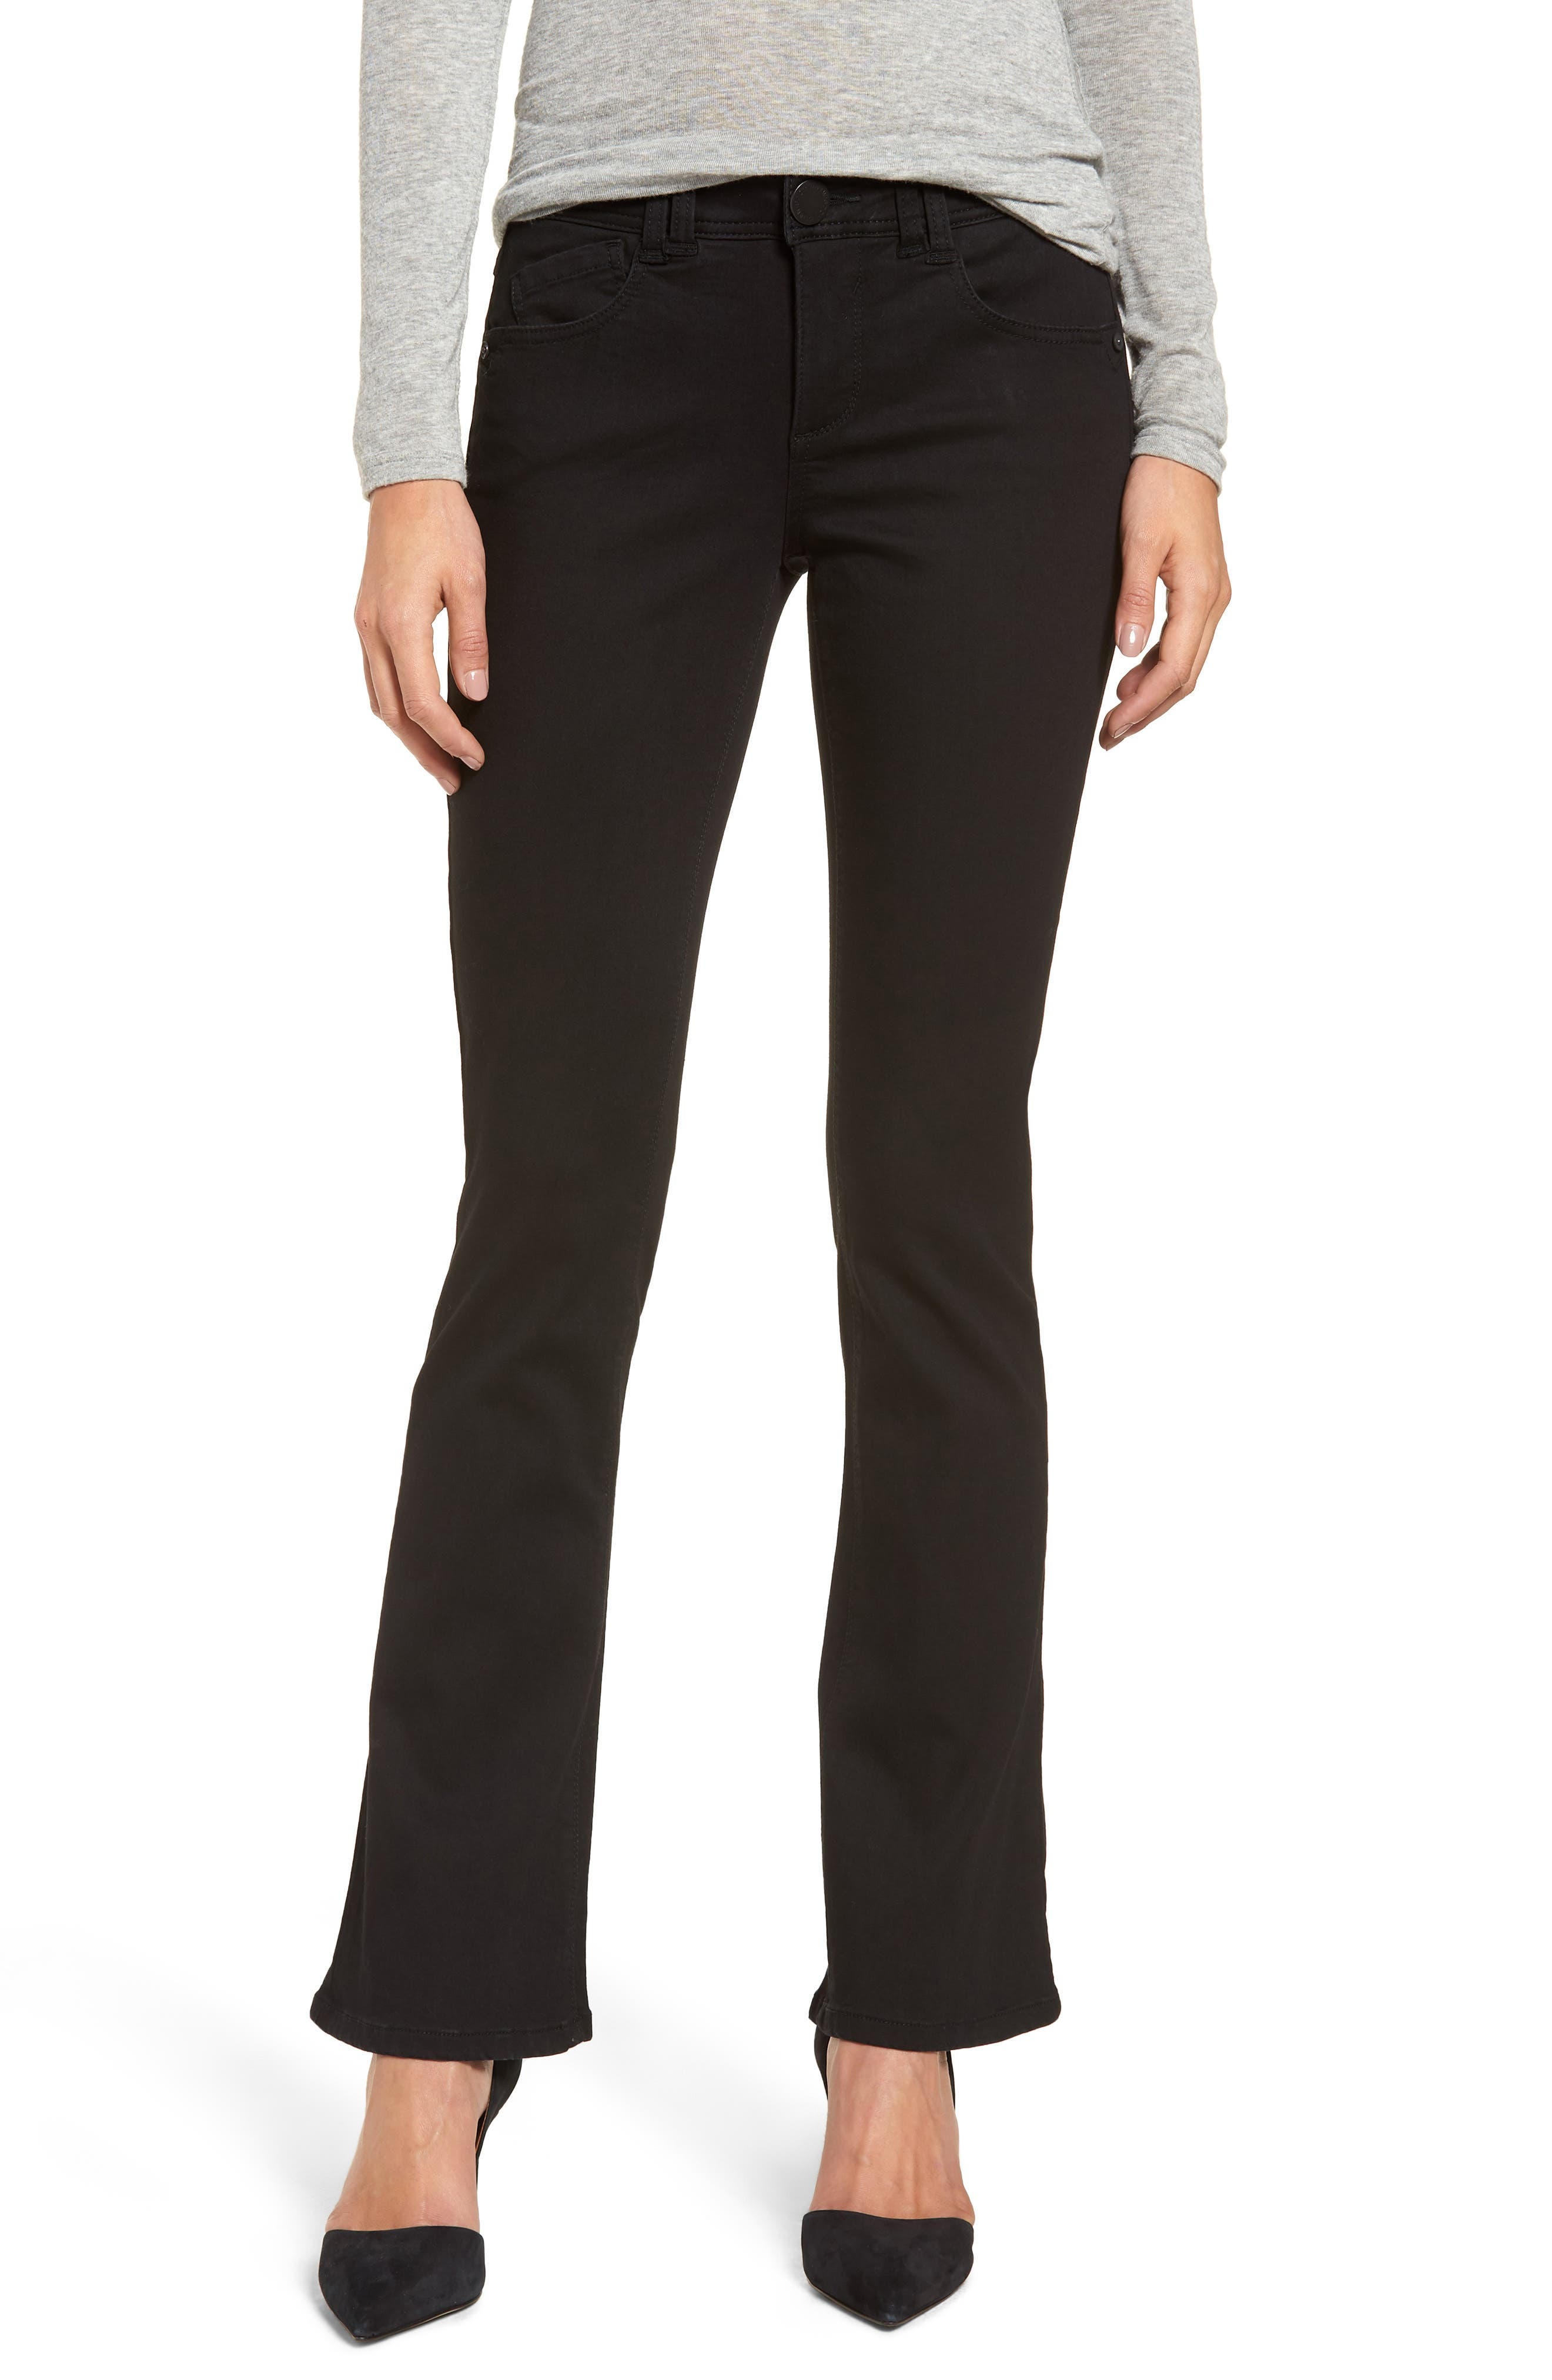 Ab-solution Itty Bitty Bootcut Jeans,                             Main thumbnail 1, color,                             Black